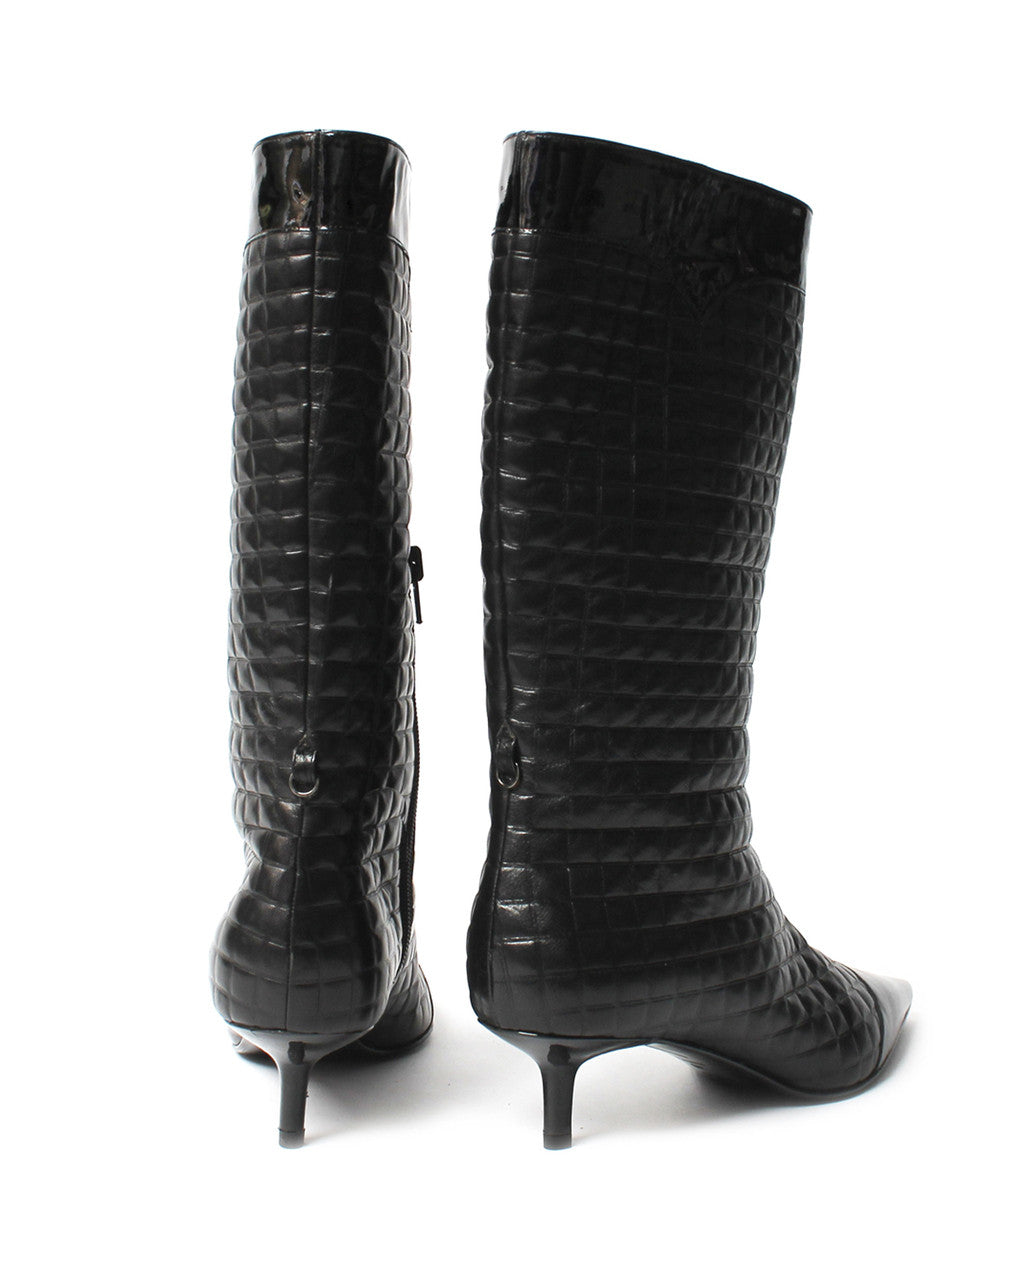 Chanel Black Quilted Leather Boots